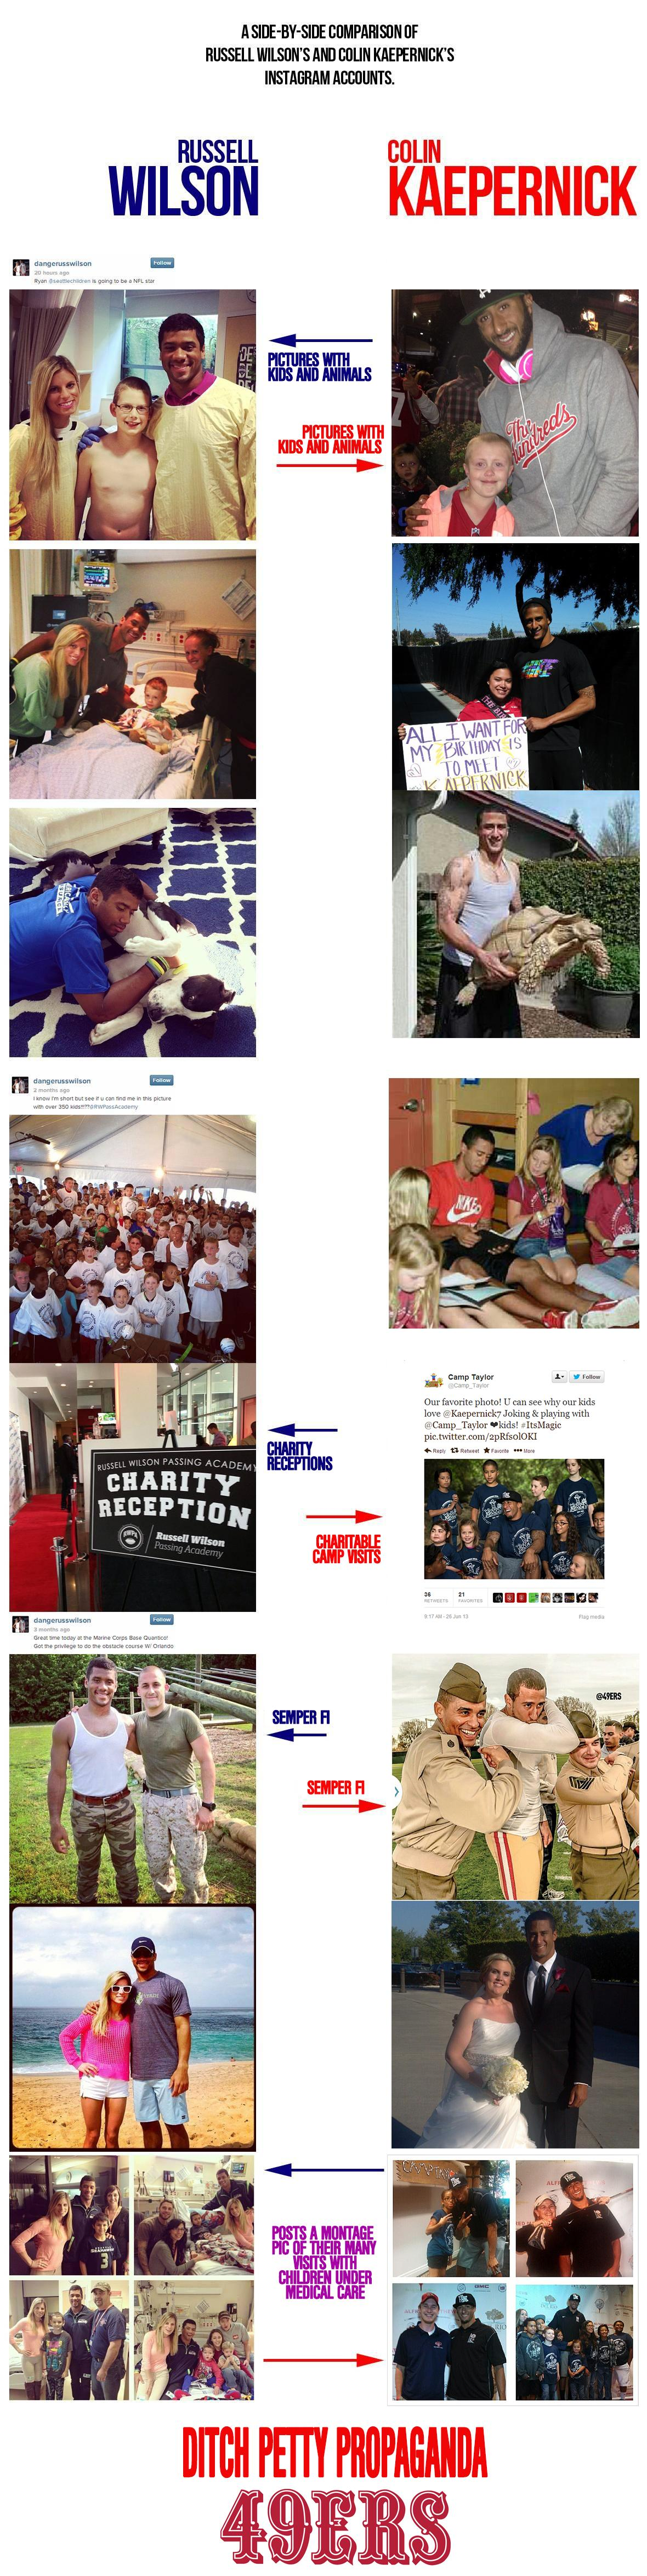 wilson kaepernick instagram accounts compared